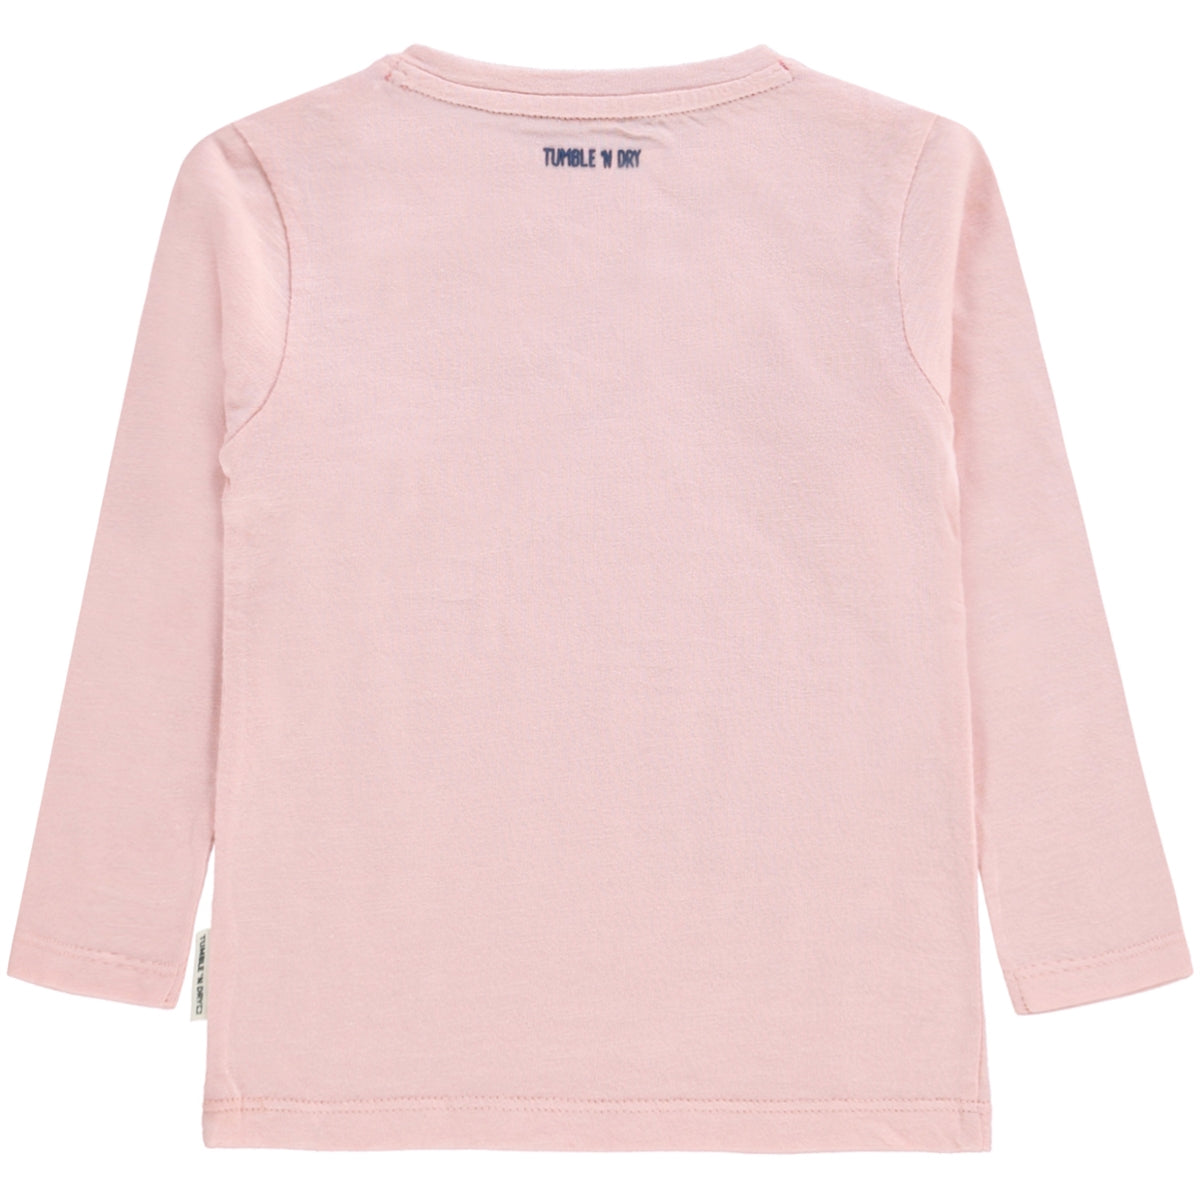 Tanjee Long Sleeve Tee